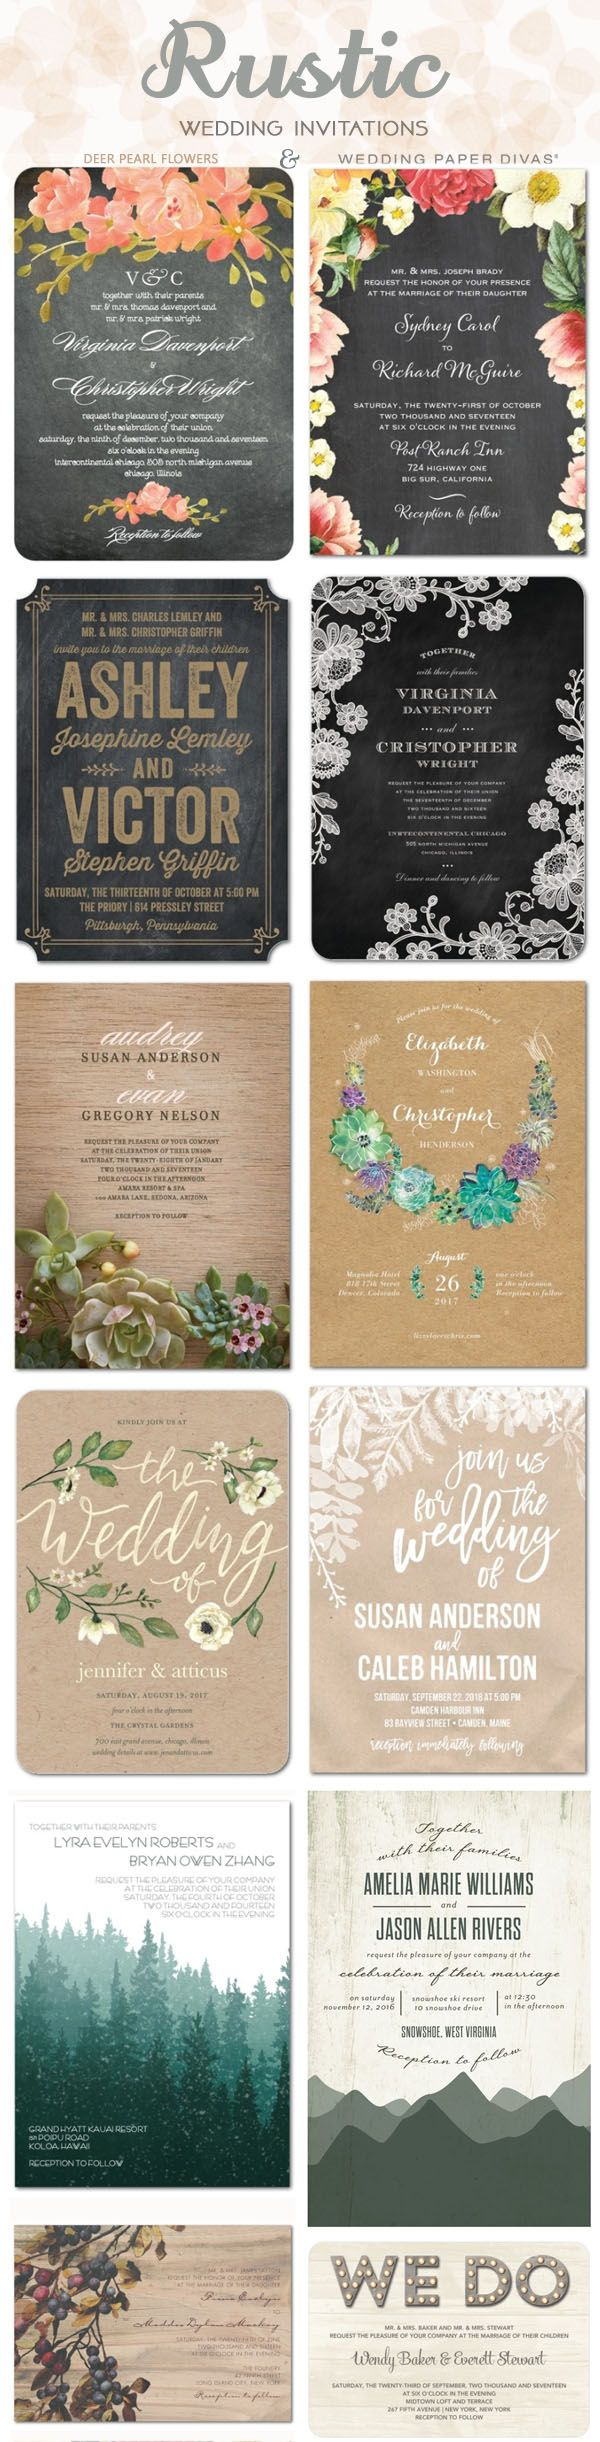 Rustic country wedding invitations ideas / http://www.deerpearlflowers.com/wedding-paper-divas-wedding-invitations/